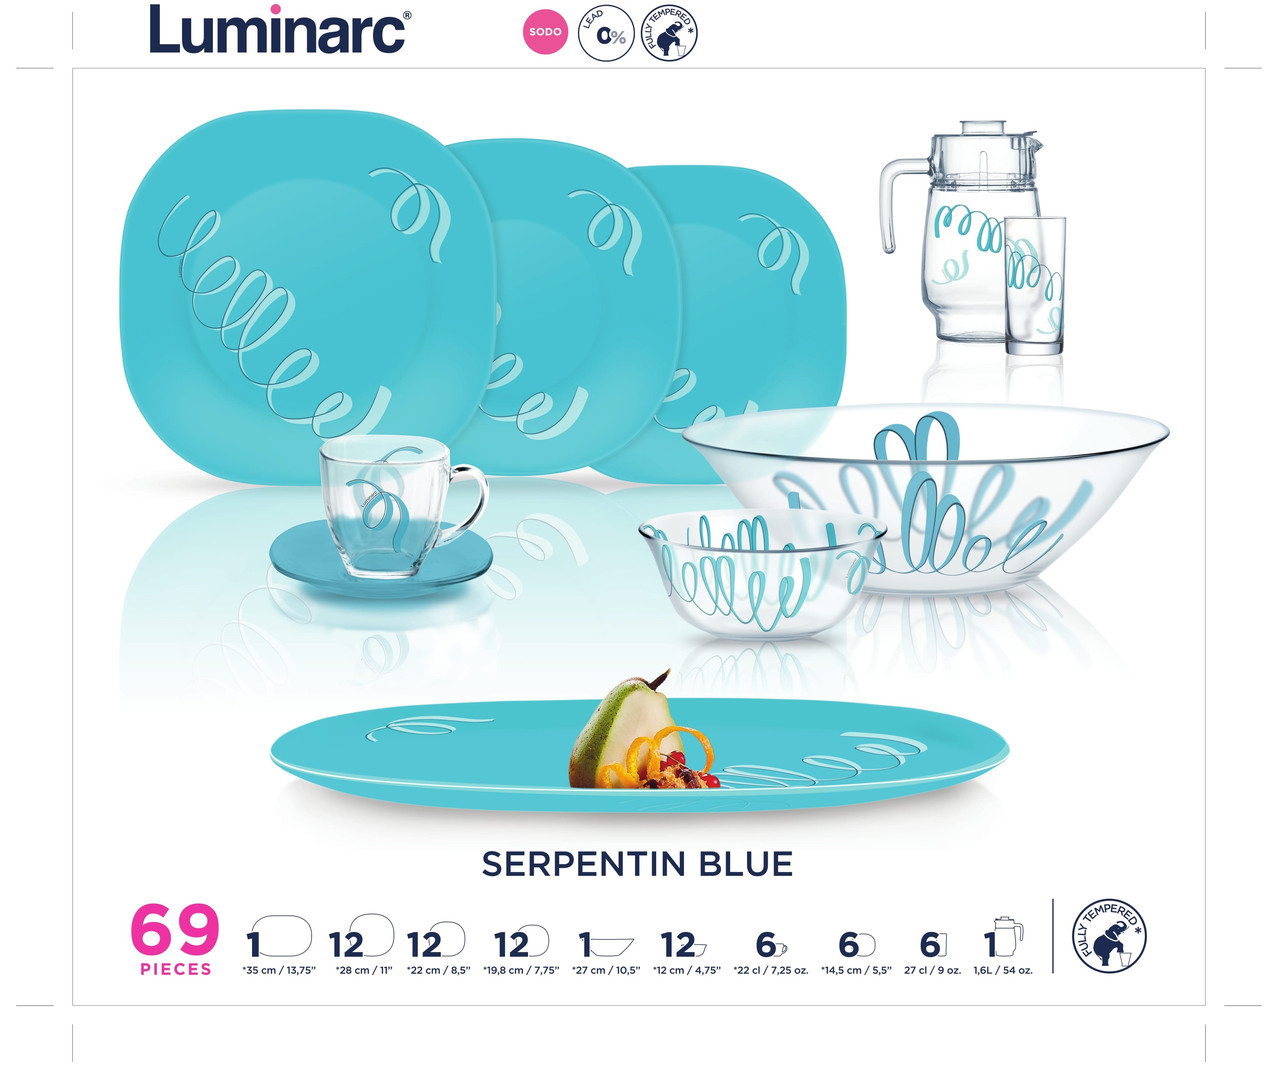 Столовый сервиз Luminarc SERPENTIN BLUE 69 пр. на 12 персон